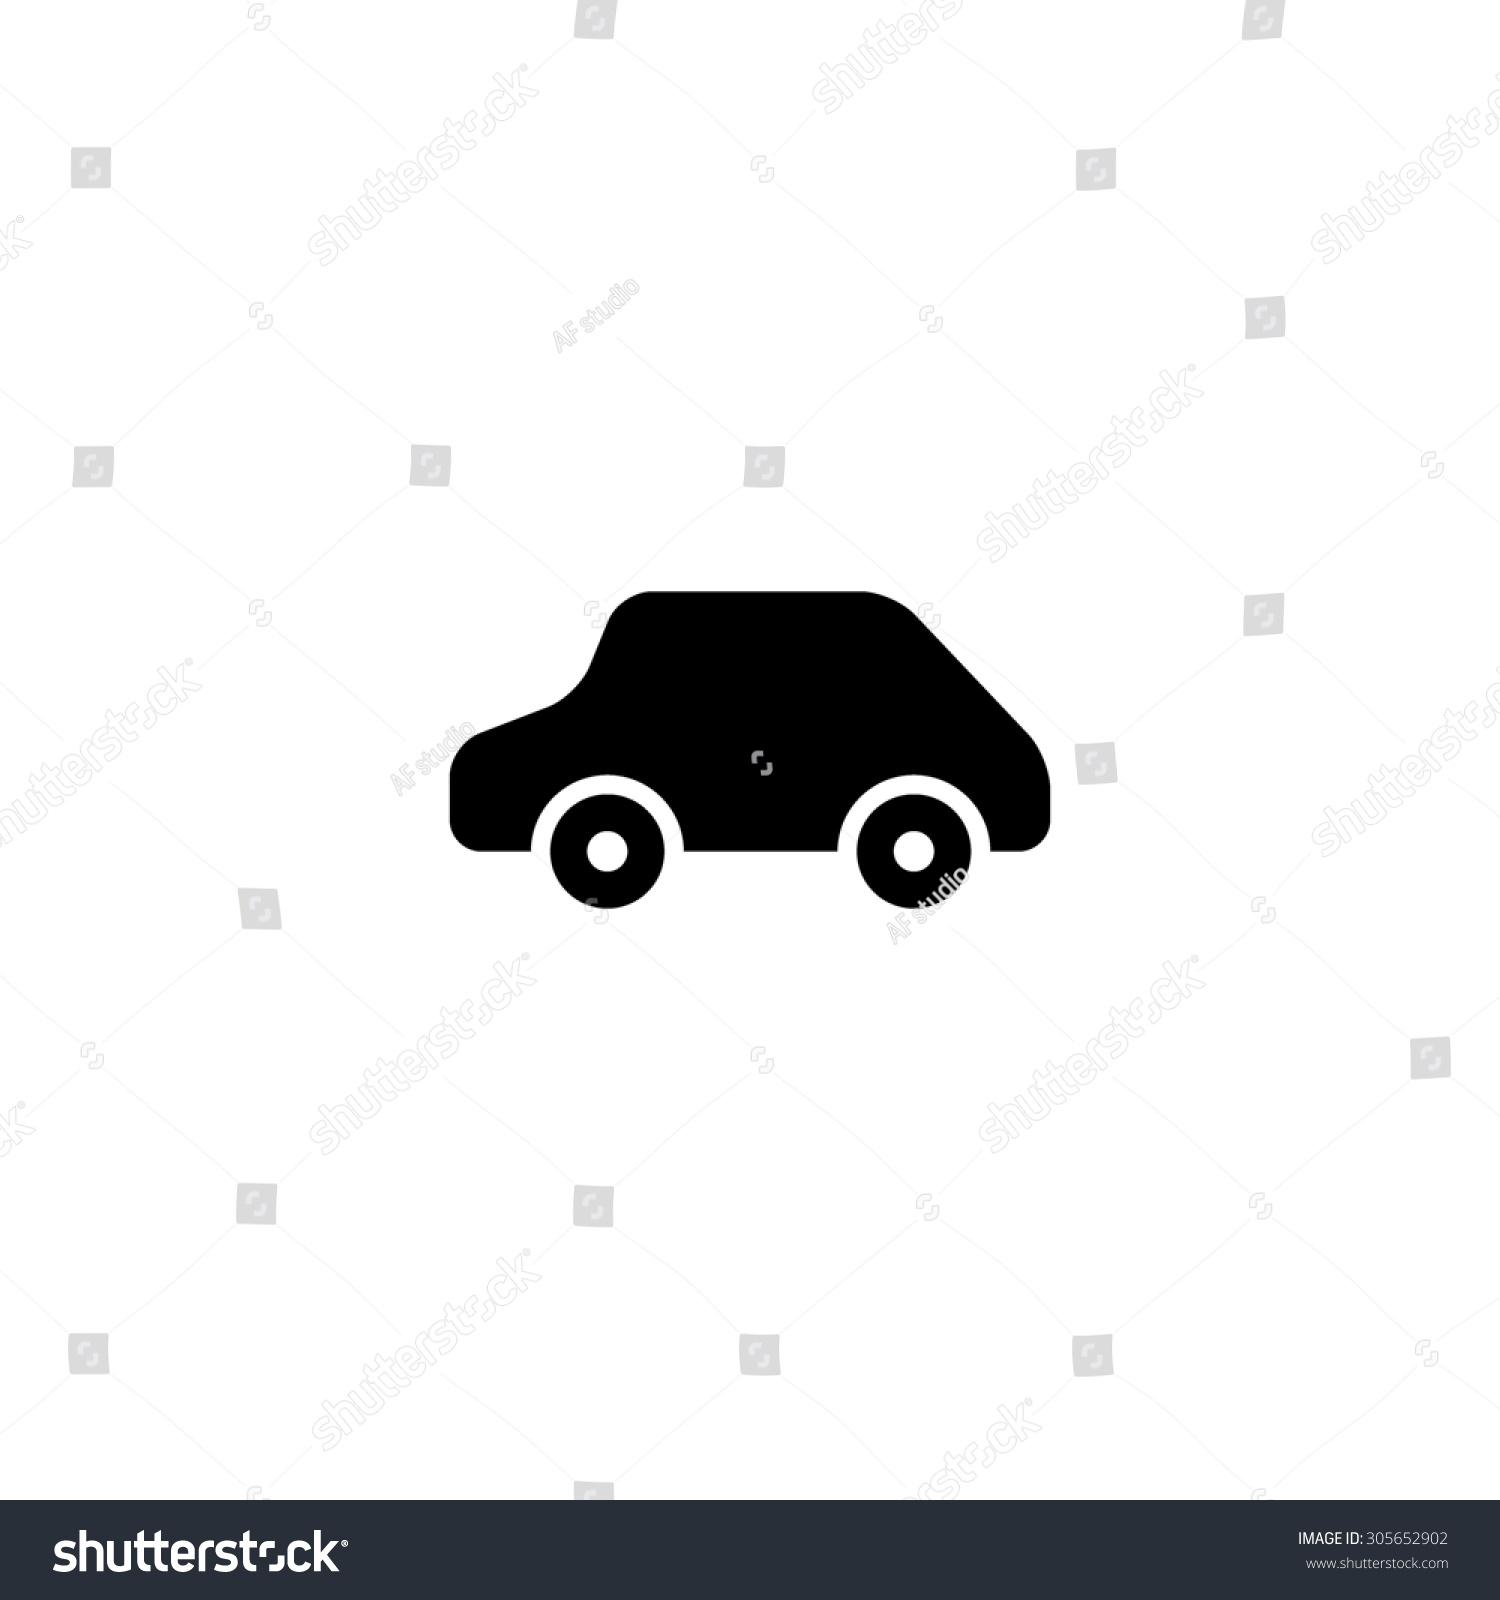 Toy car logo template simple black stock illustration 305652902 toy car logo template simple black flat pictogram on white background pronofoot35fo Choice Image